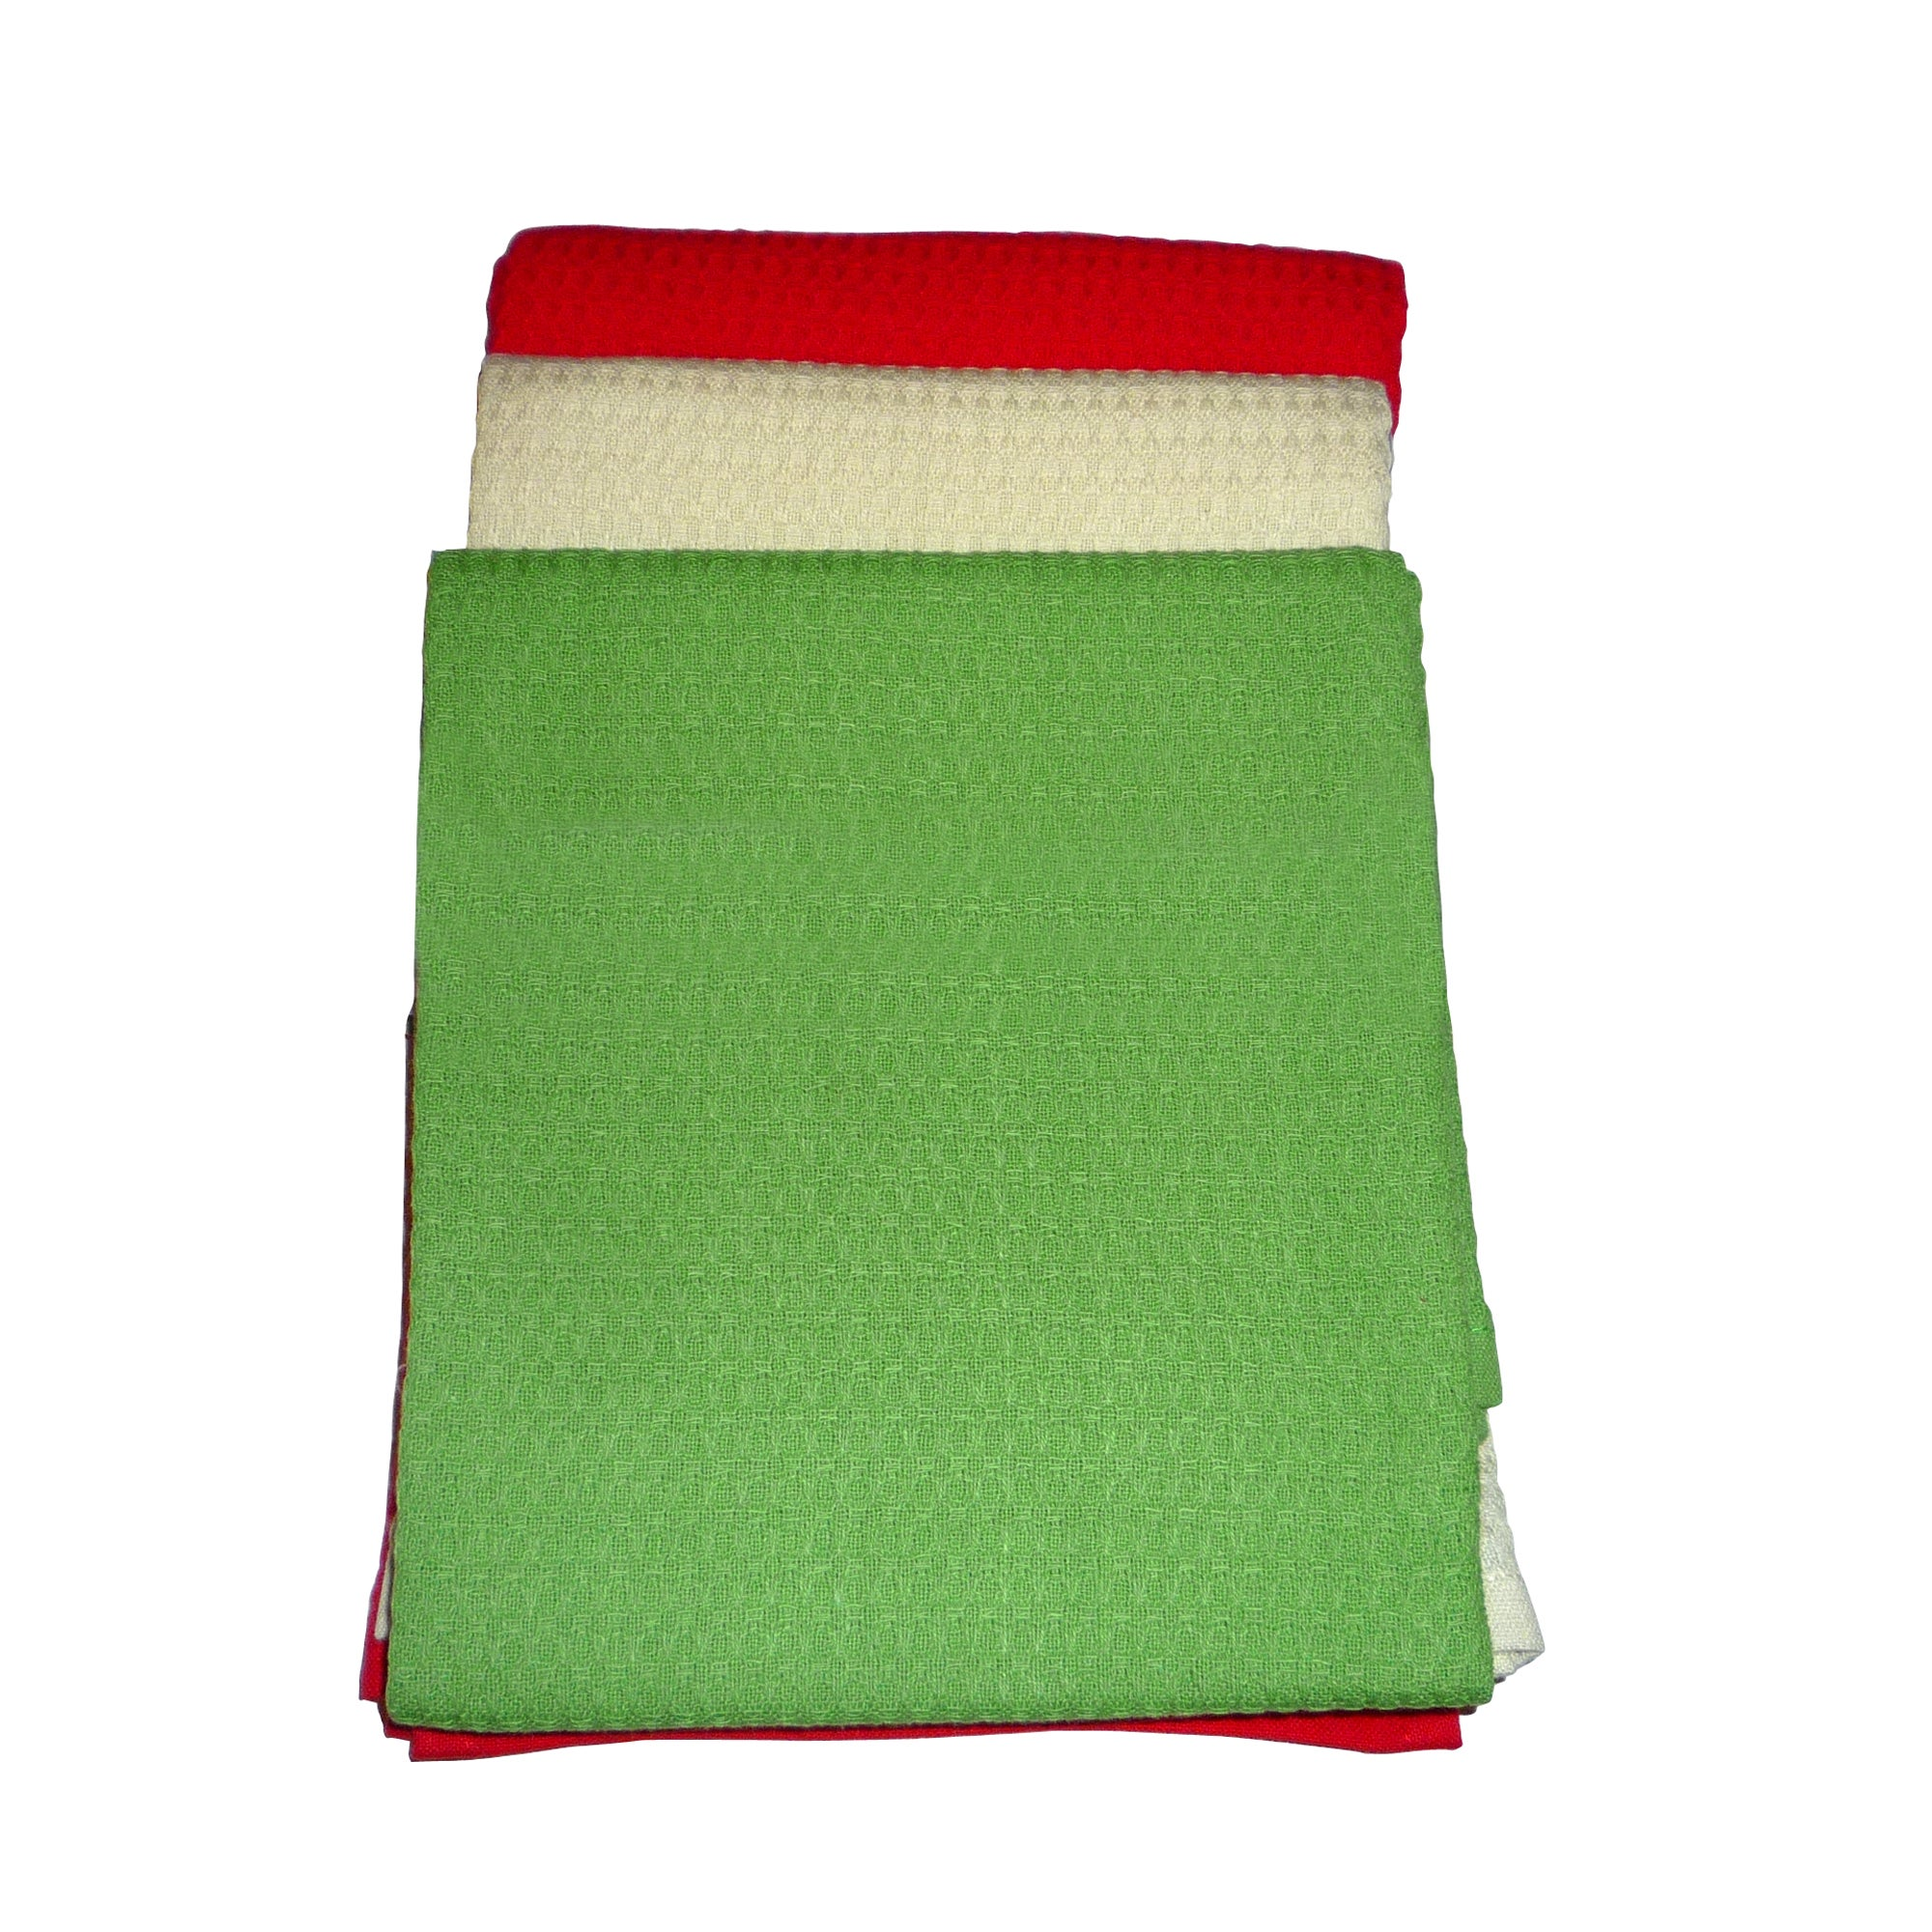 Pack of 3 Red, Cream and Green Waffle Tea Towels